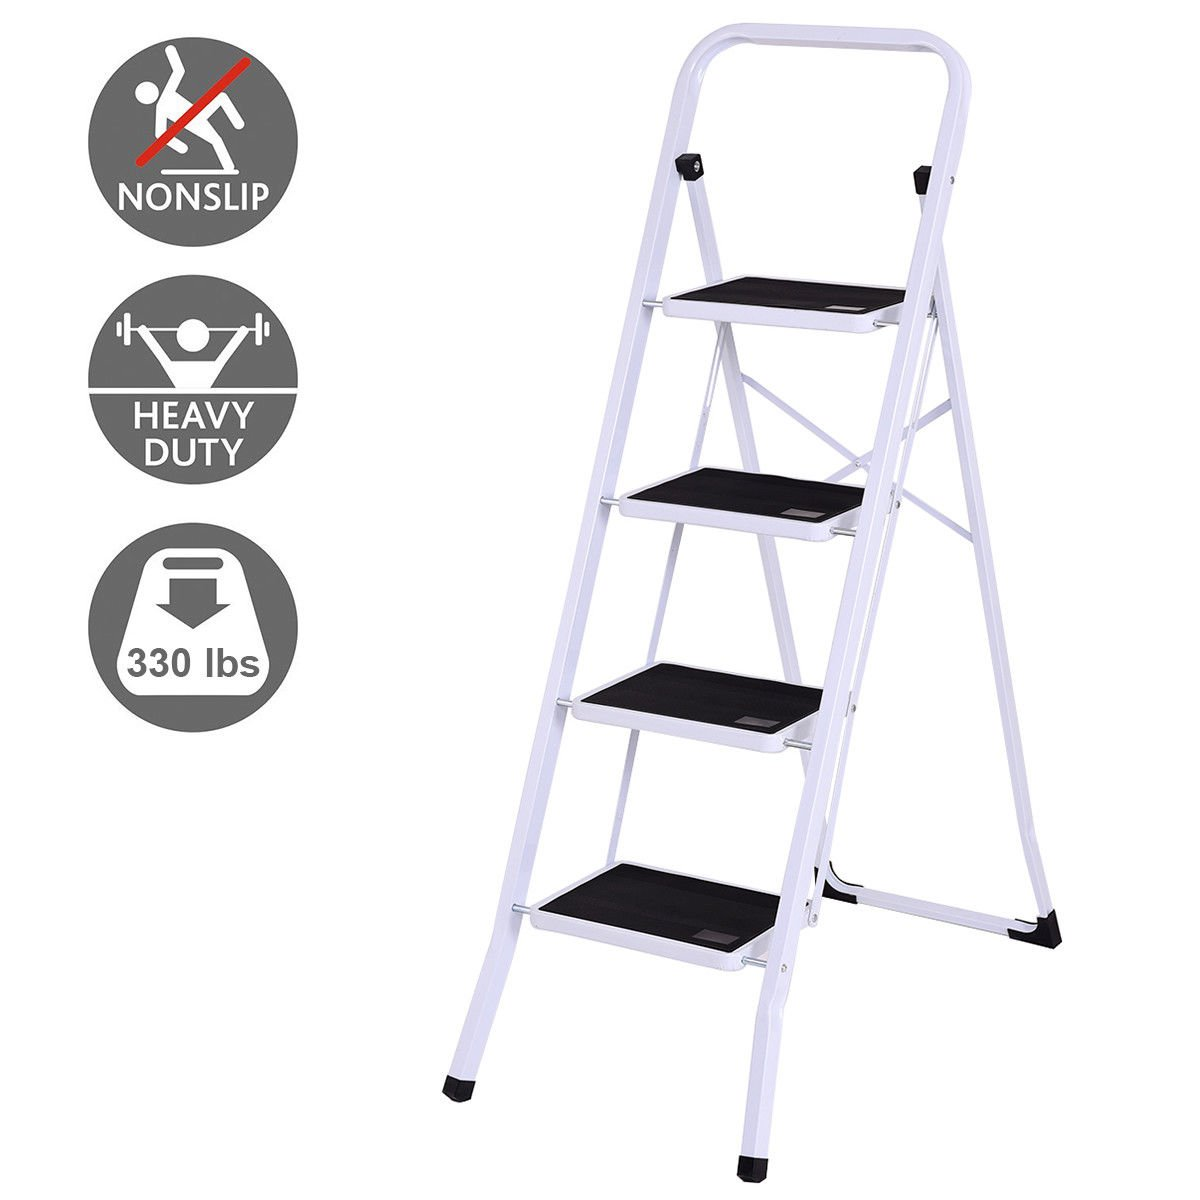 Giantex 4 Step Ladder Folding Steel Step Stool Steel Stepladders with Anti-Slip Heavy Duty with 330Lbs Capacity